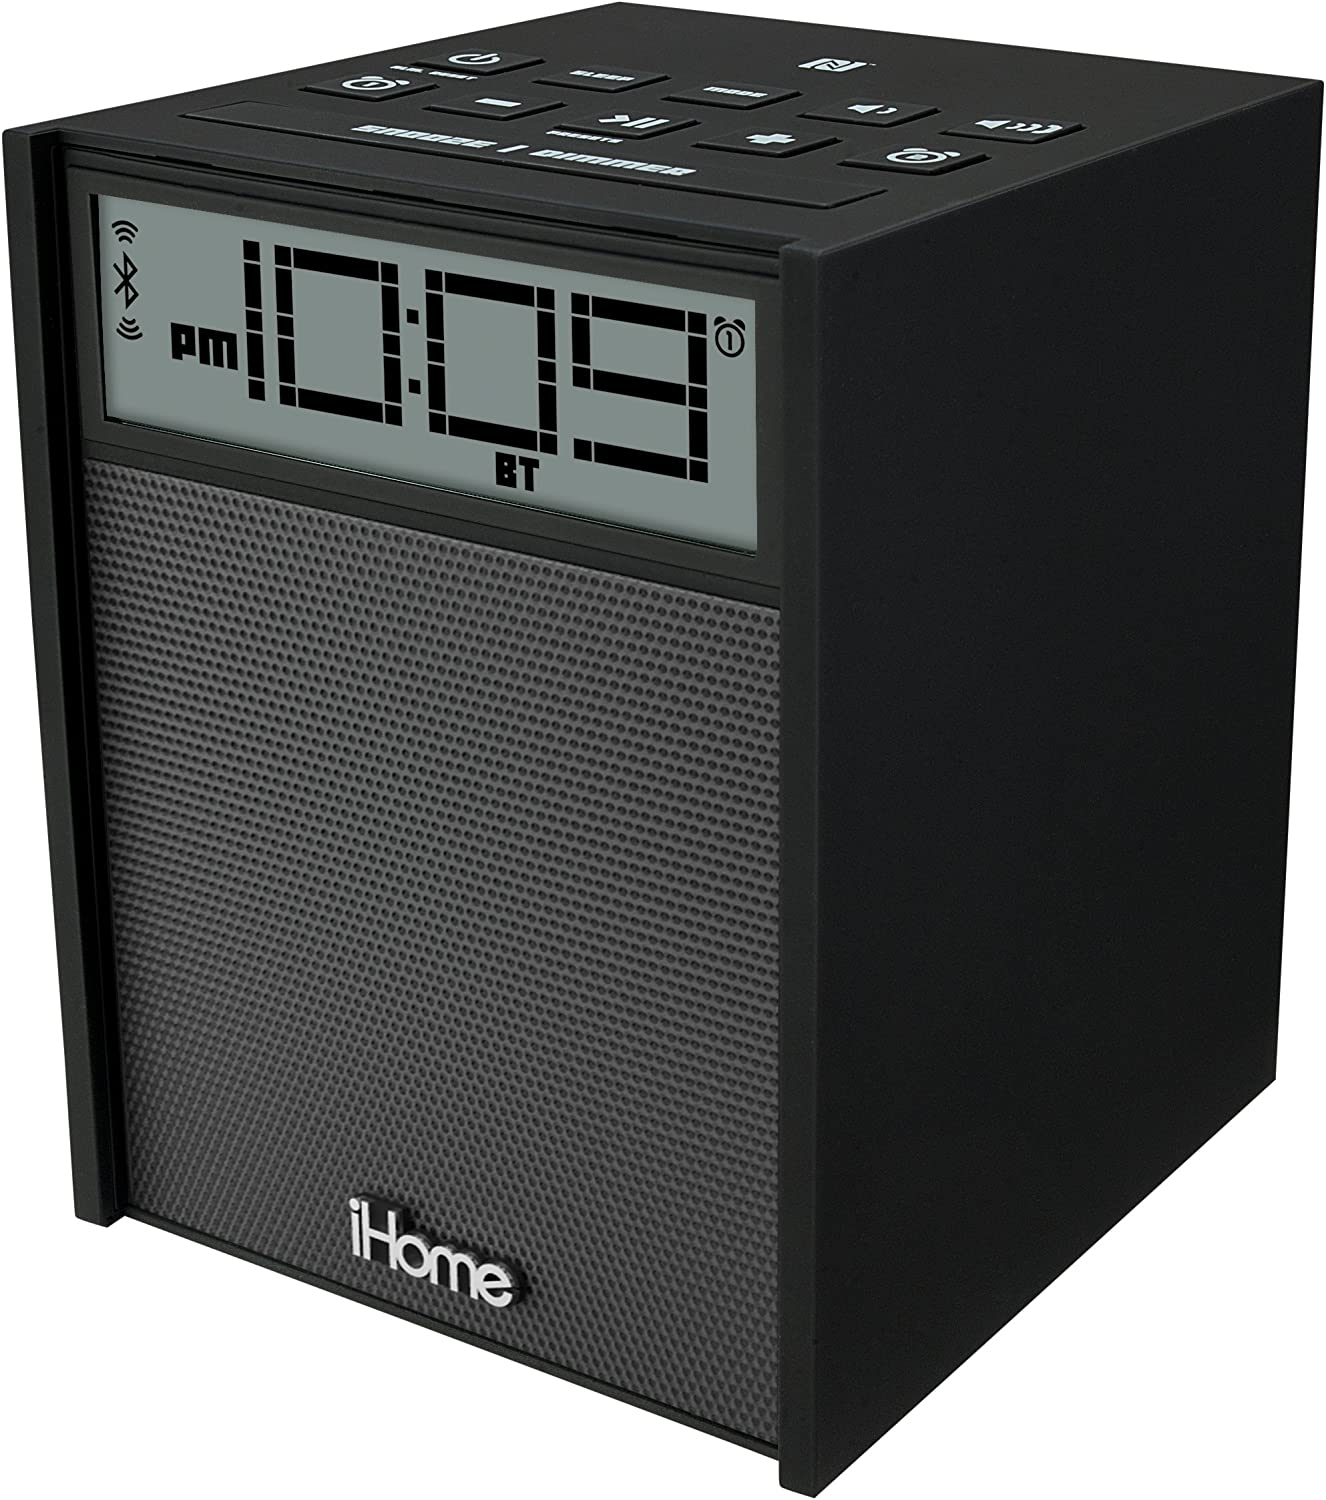 Sound Design iHome IBN180B Rubberized NFC blueetooth Dual Alarm FM Clock Radio with USB Charging Aux-In, Black (Discontinued by Manufacturer)